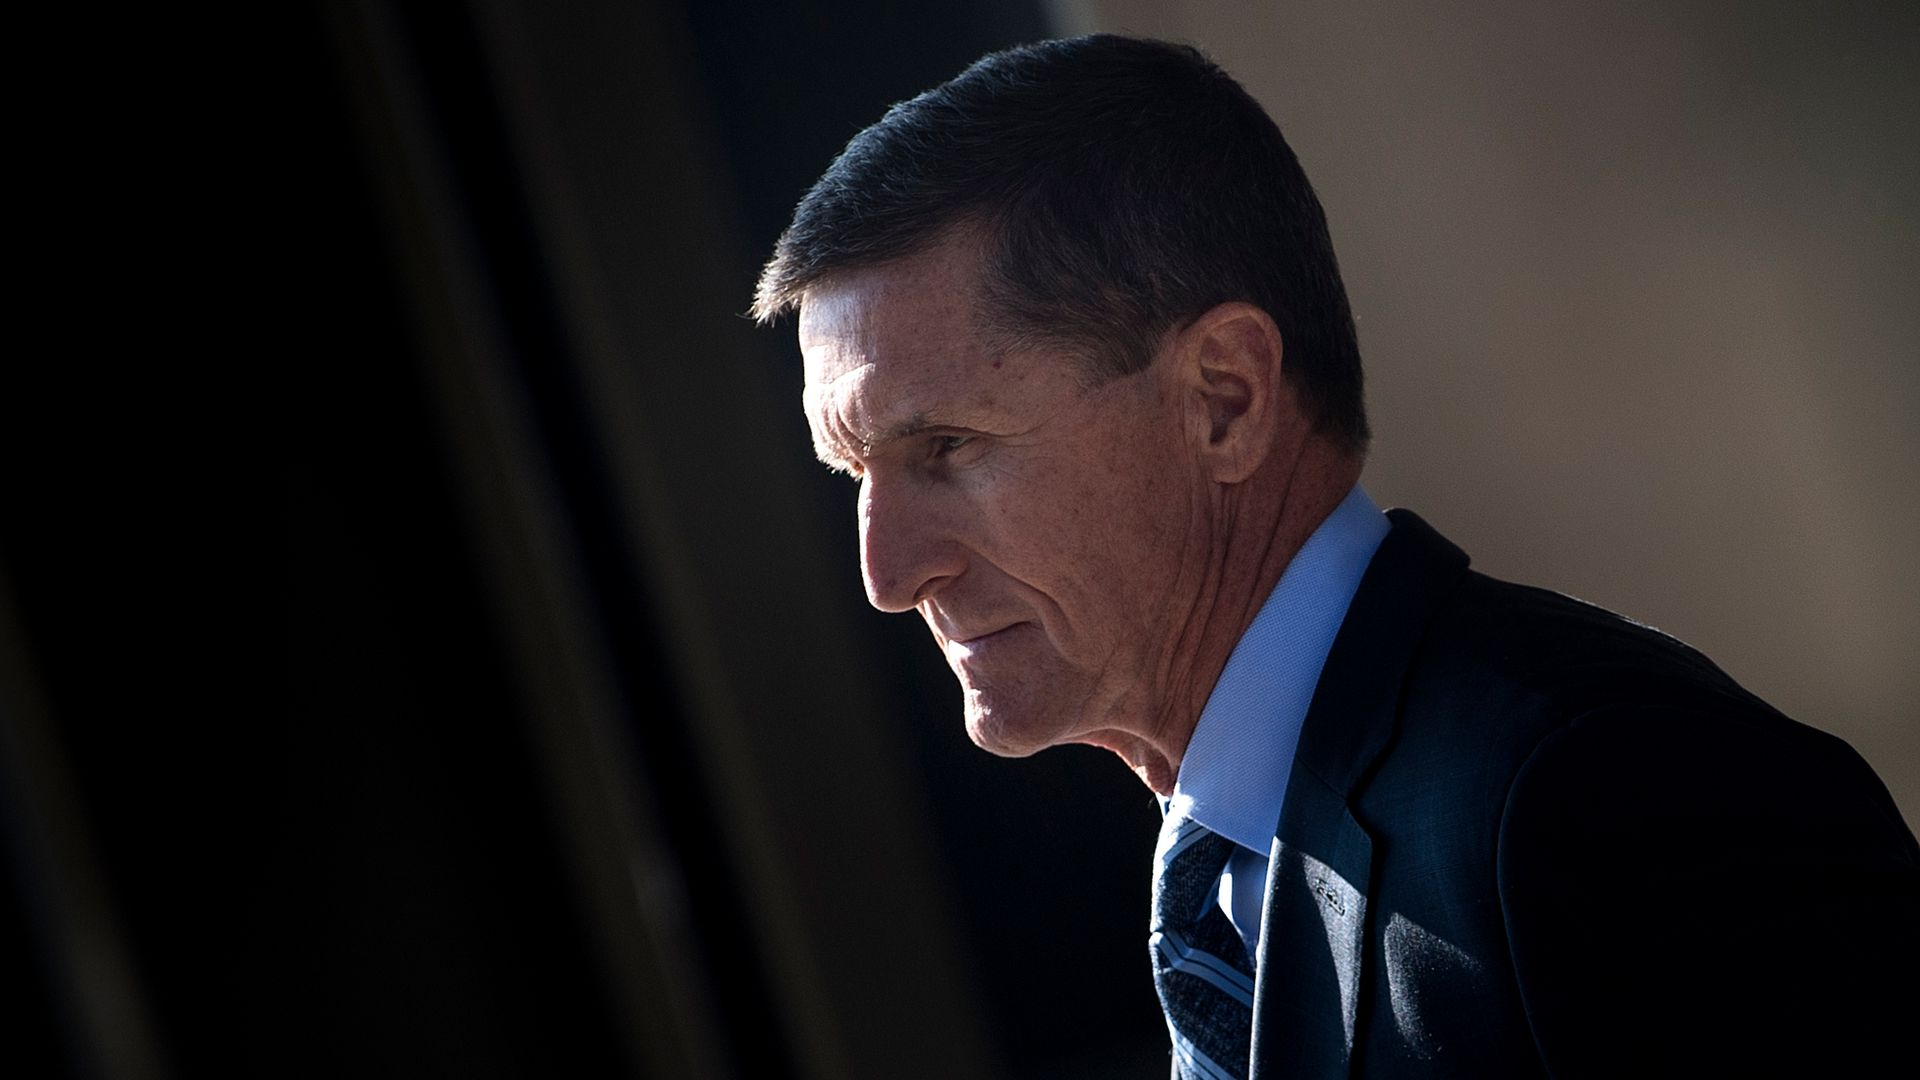 Michael Flynn in a suit